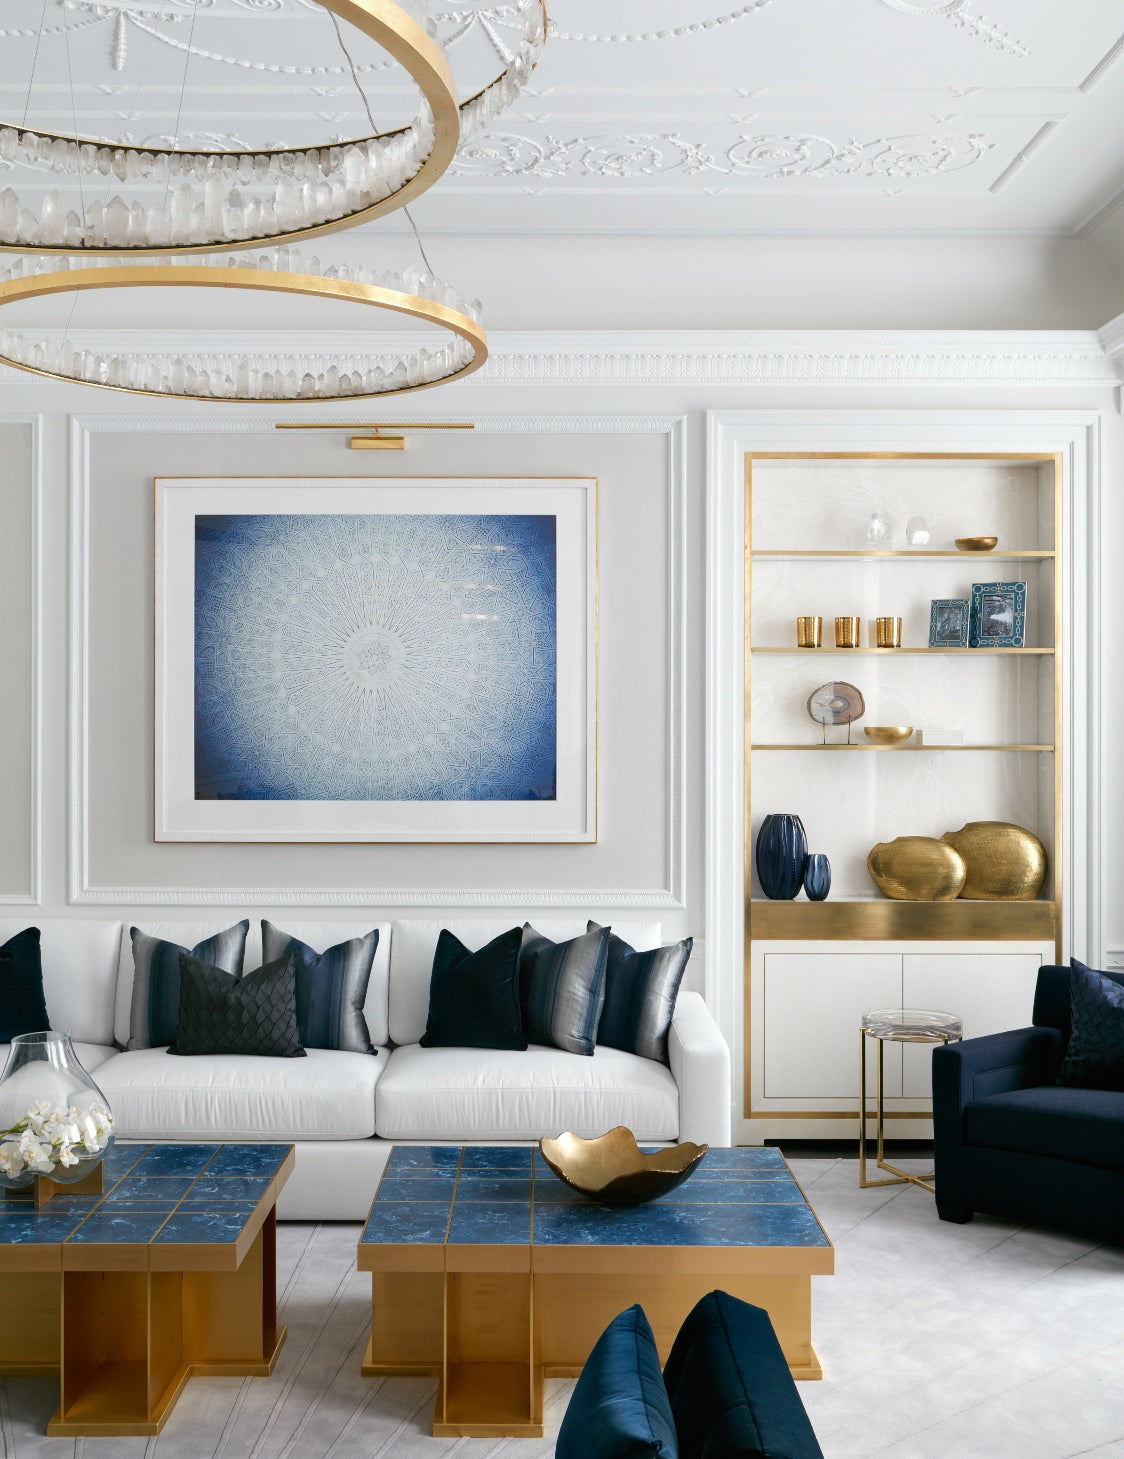 Living Room Lighting Ideas – Katharine Pooley – Read more on LuxDeco.com